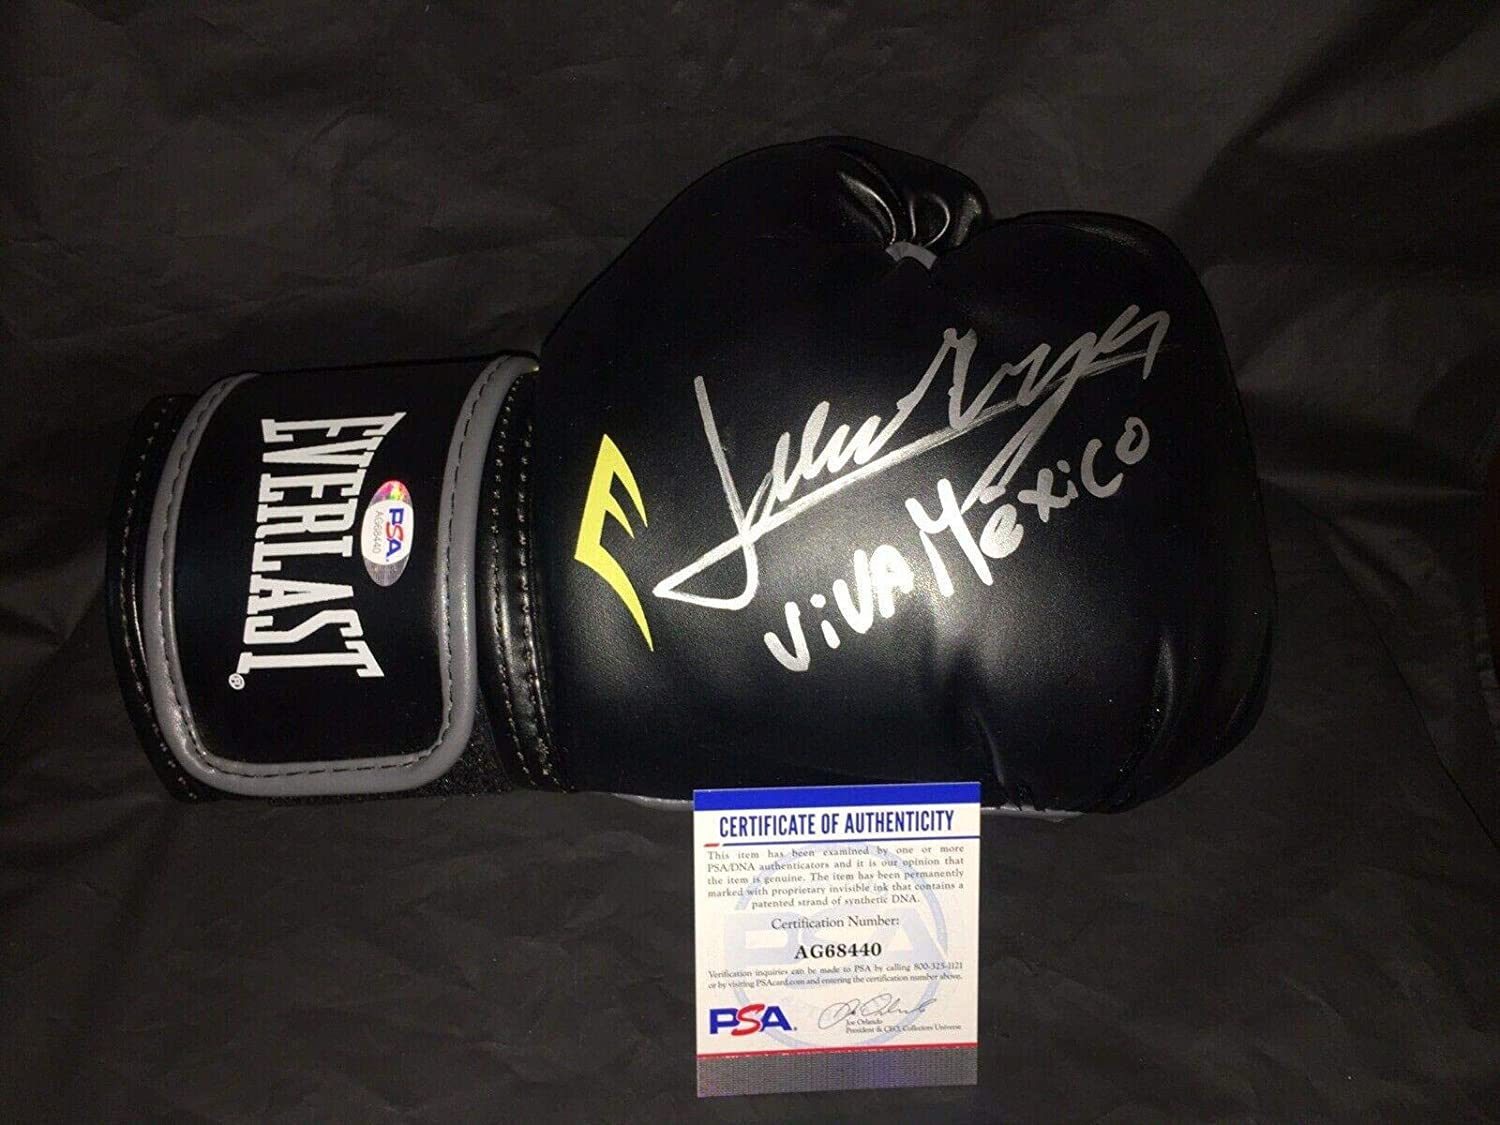 Jaime Munguia Signed Everlast Boxing Glove Viva Mexico Champ - PSA/DNA Certified - Autographed Boxing Gloves